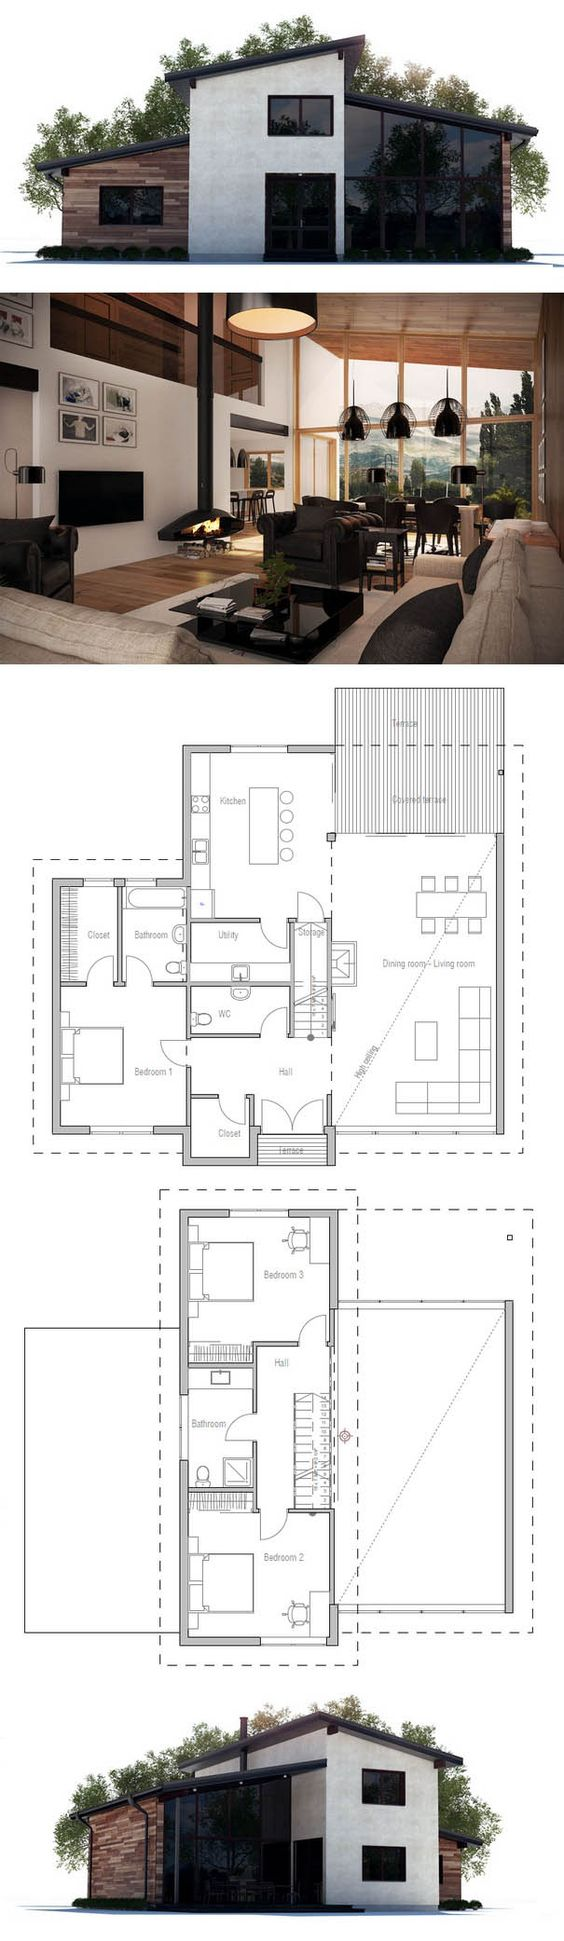 Haus Pläne, Hauspläne and Zuhause on Pinterest size: 564 x 1941 post ID: 9 File size: 0 B